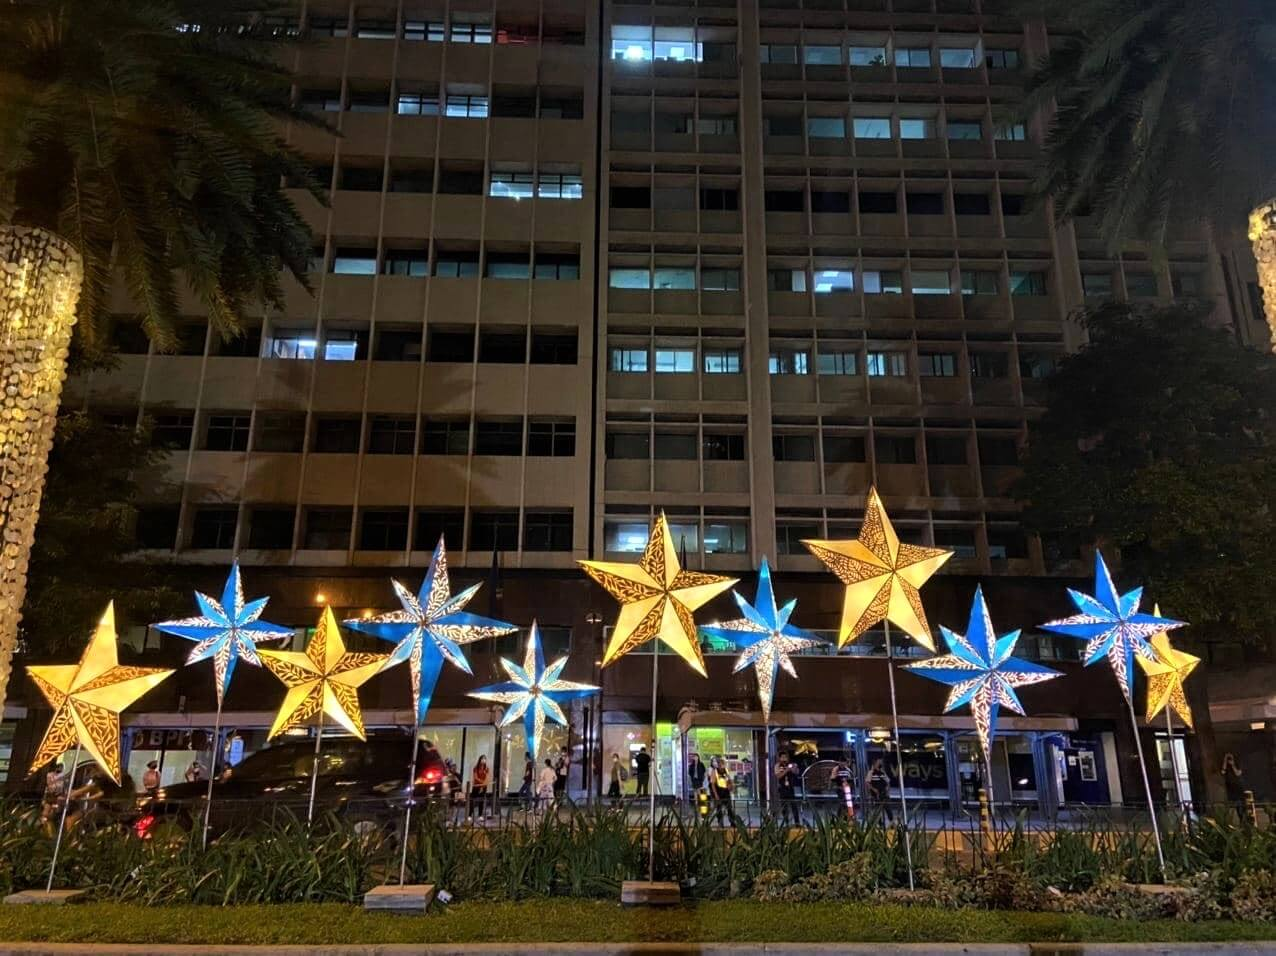 Ayala Avenue Lights Up to User in Brighter Days Ahead